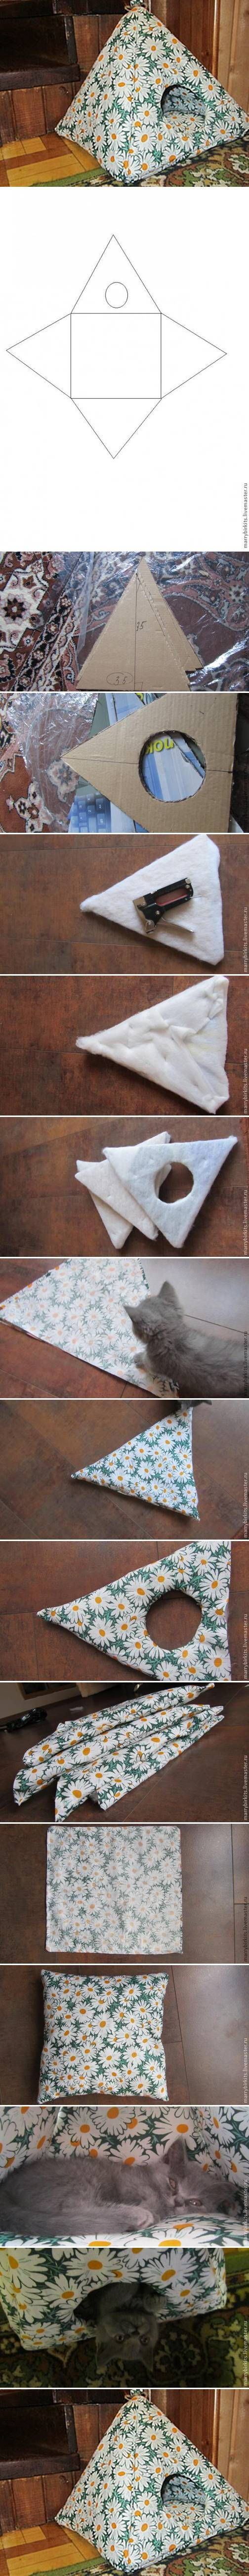 DIY House for Cat DIY Projects | http://UsefulDIY.com